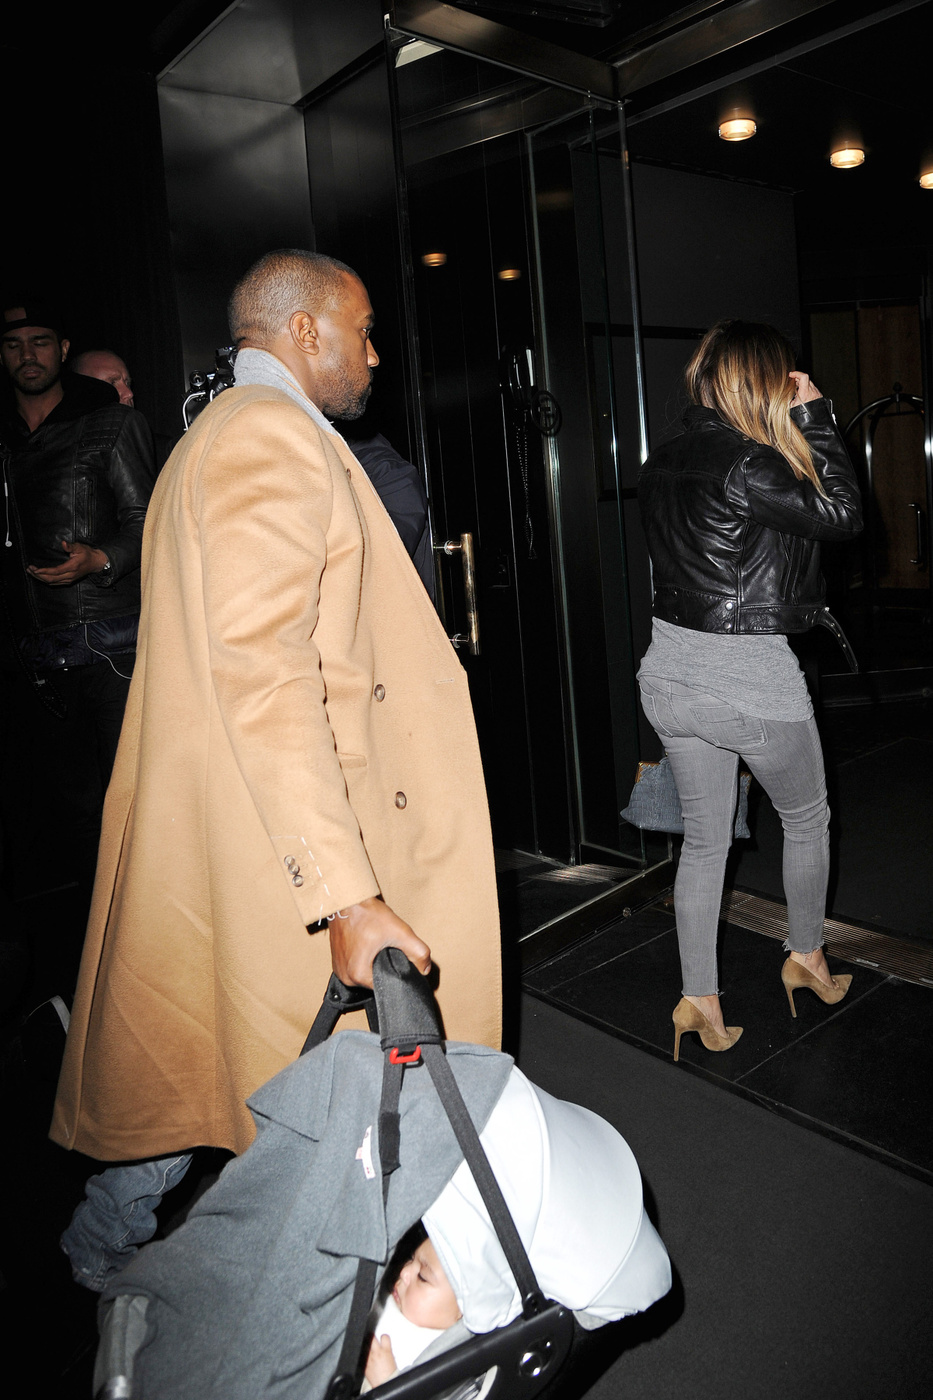 109190, NEW YORK, NEW YORK - Friday November 22, 2013. Kim Kardashian and Kanye West step out with baby North for a dinner with Kris Jenner in New York City. Photograph: ? TS, PacificCoastNews**FEE MUST BE AGREED PRIOR TO USAGE** **E-TABLET/IPAD & MOBILE PHONE APP PUBLISHING REQUIRES ADDITIONAL FEES** LOS ANGELES OFFICE: +1 310 822 0419 LONDON OFFICE: +44 20 8090 4079